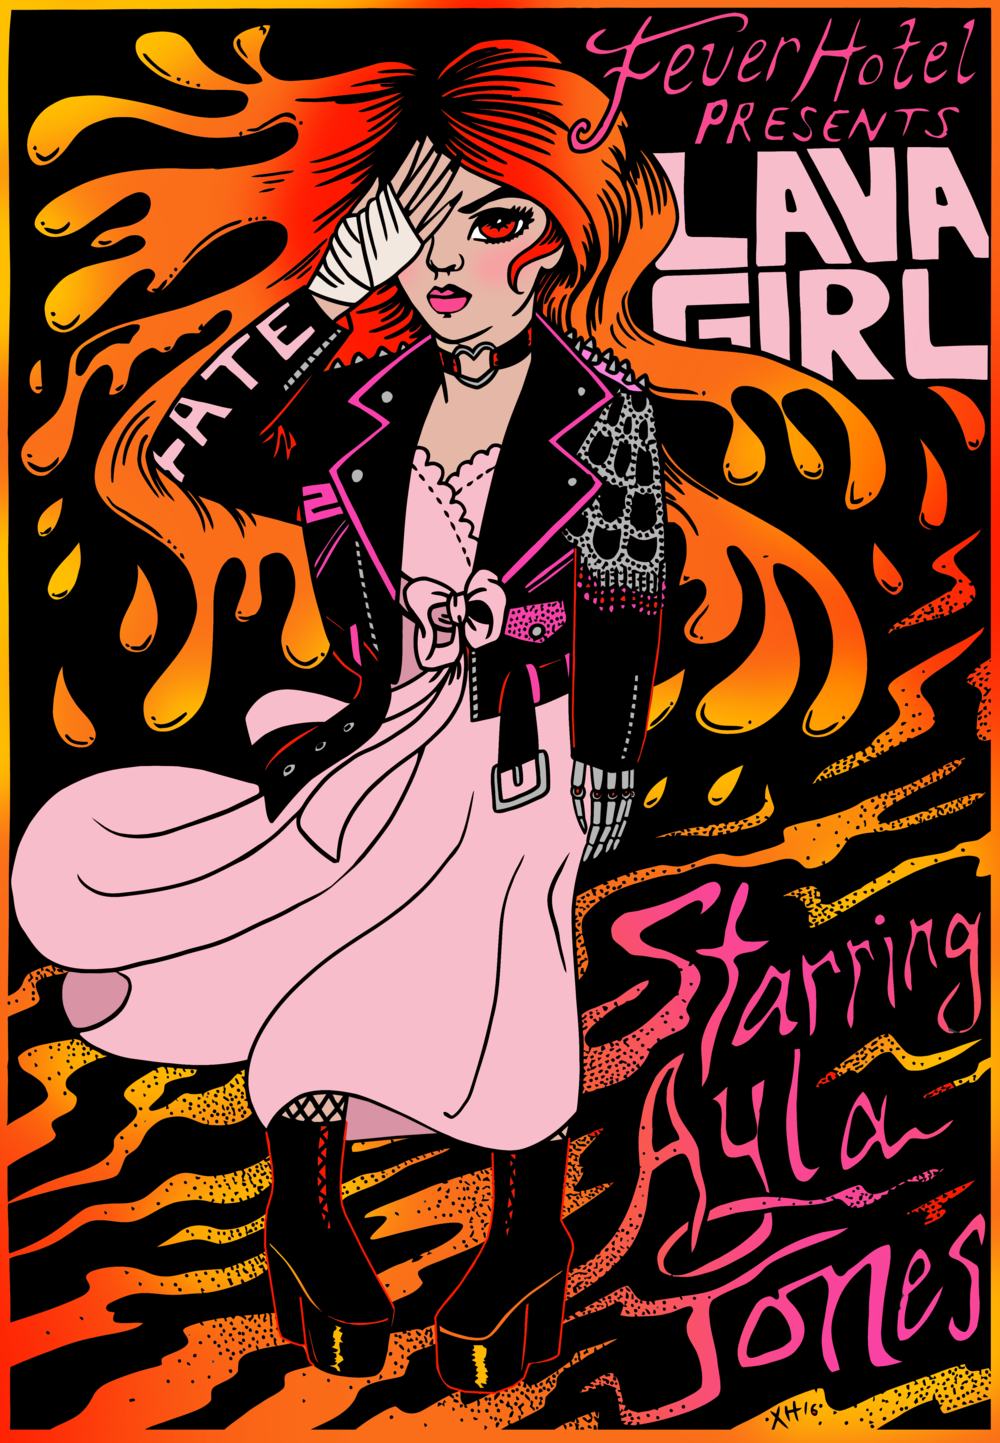 LAVA GIRL (1).png